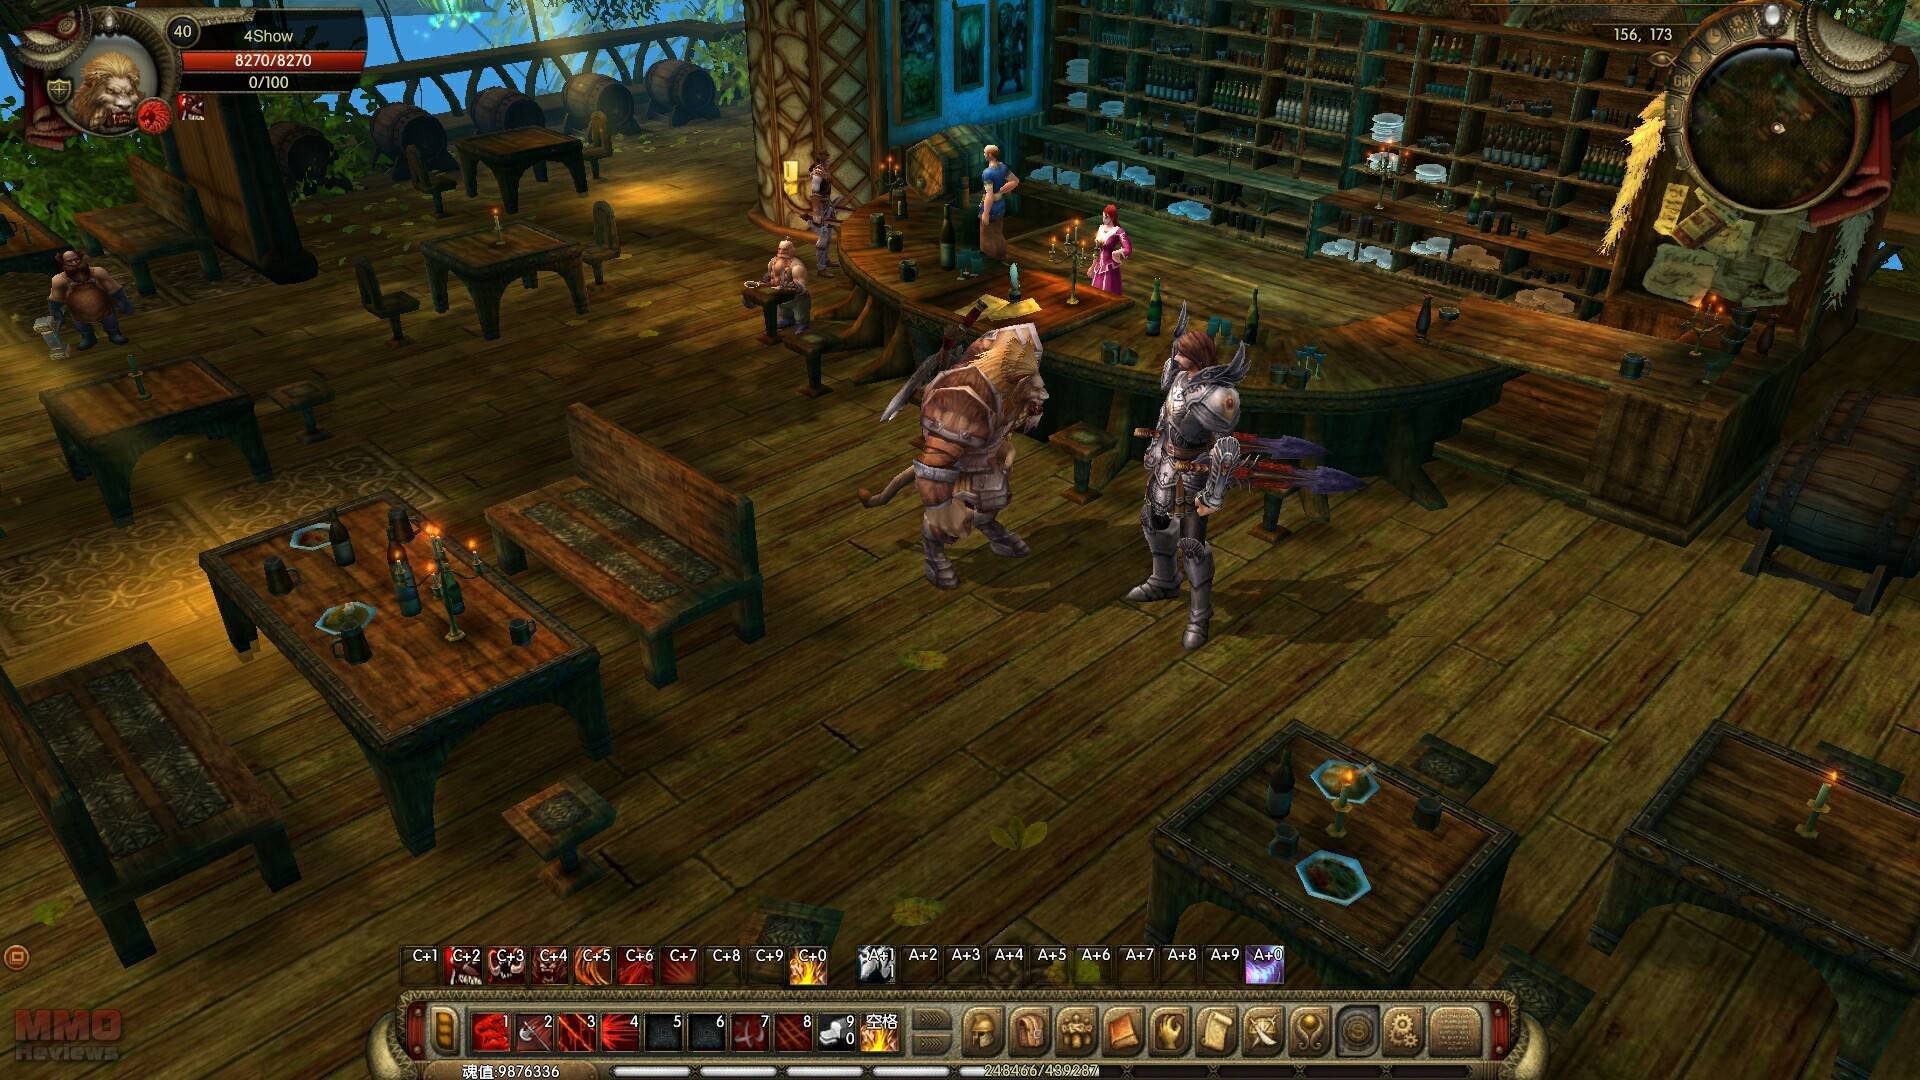 ... Free to Play Games Online Now Feautering The Best 2017 Mmorpg – Free